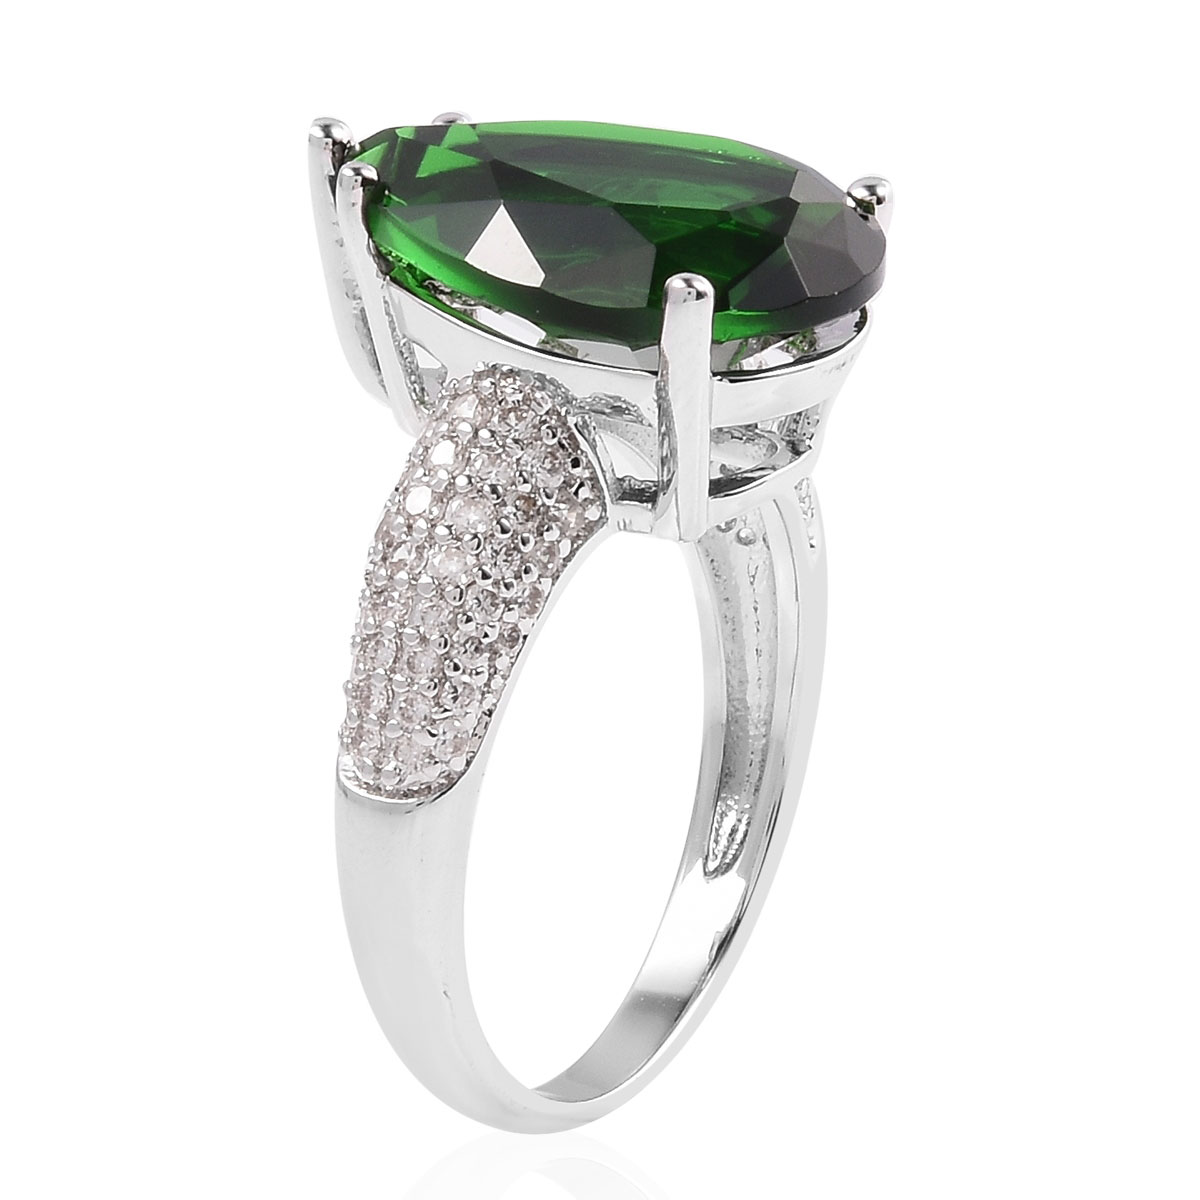 Shop LC Delivering Joy Statement Ring Green Glass White Cubic Zirconia CZ Jewelry for Women Size 6 Ct 14.6